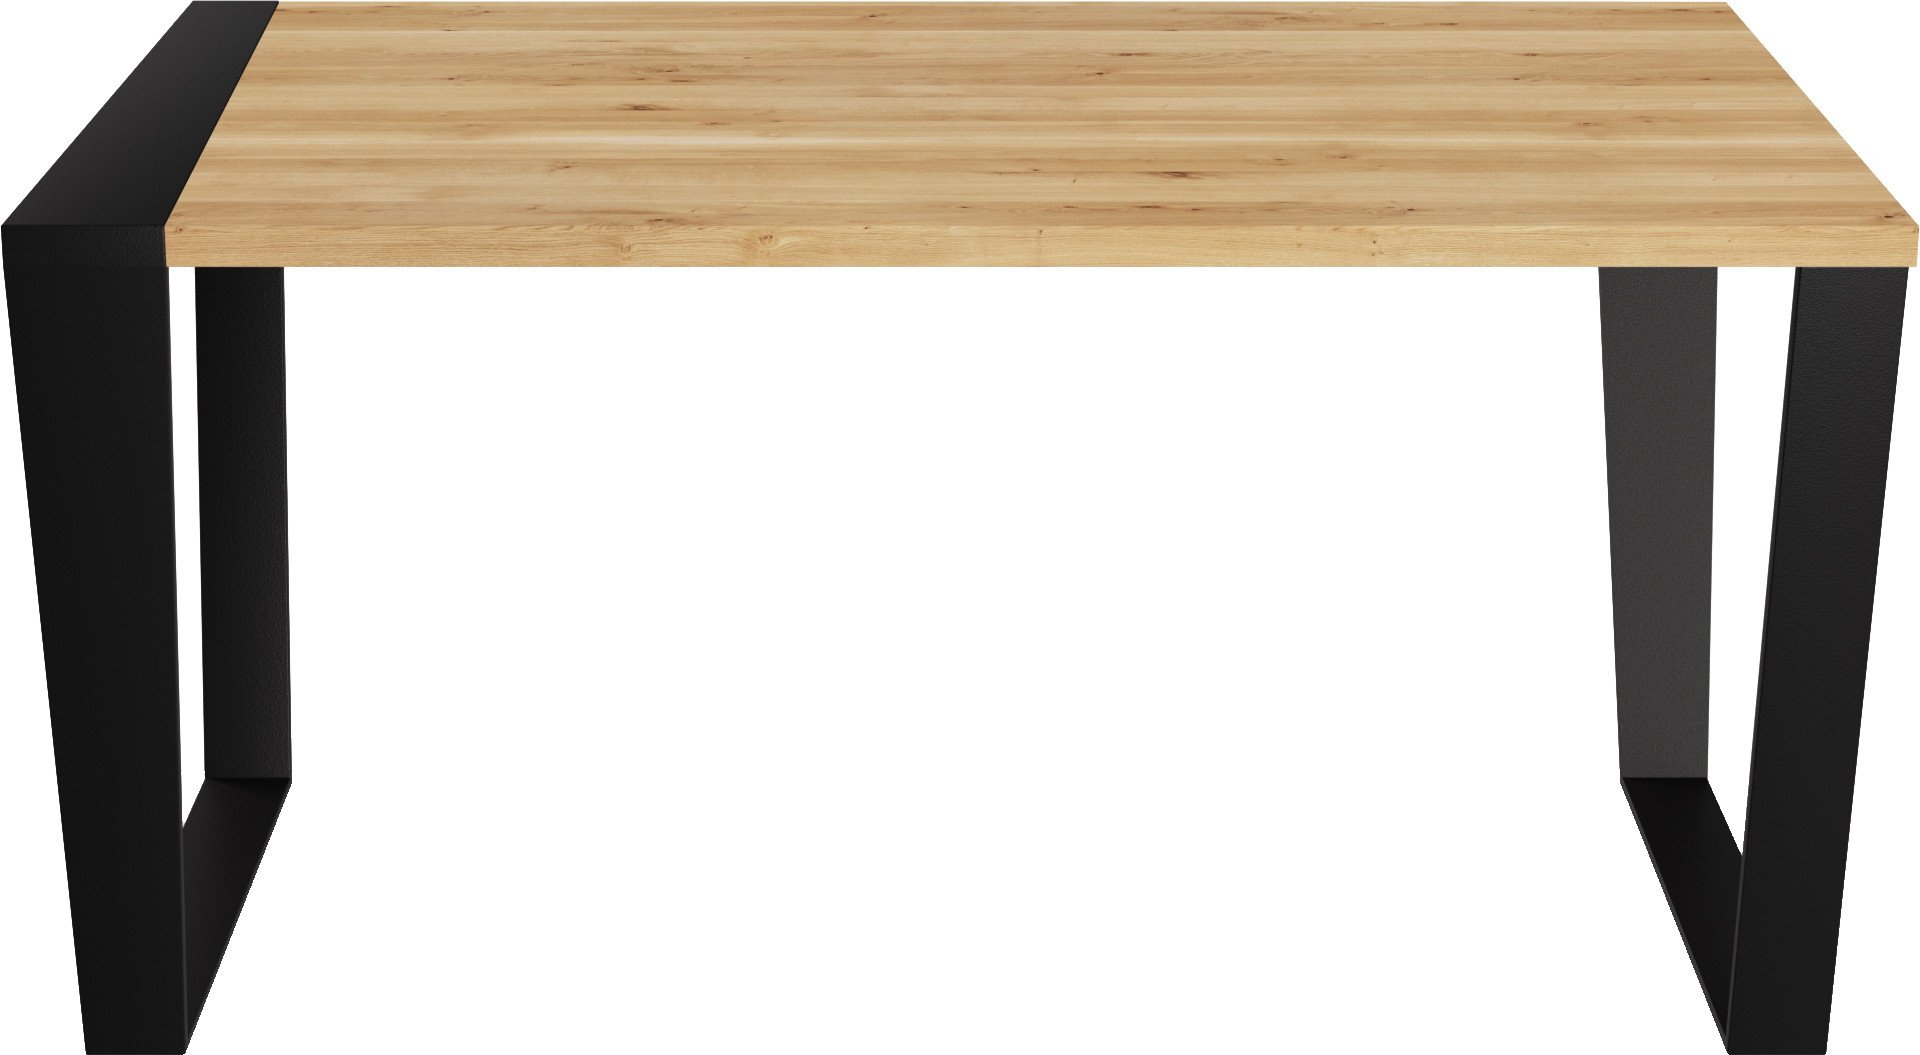 SGW Scheme Table Natural Oak/Black Steel by S. Gulewicz-Wysocka for LOFT Decora